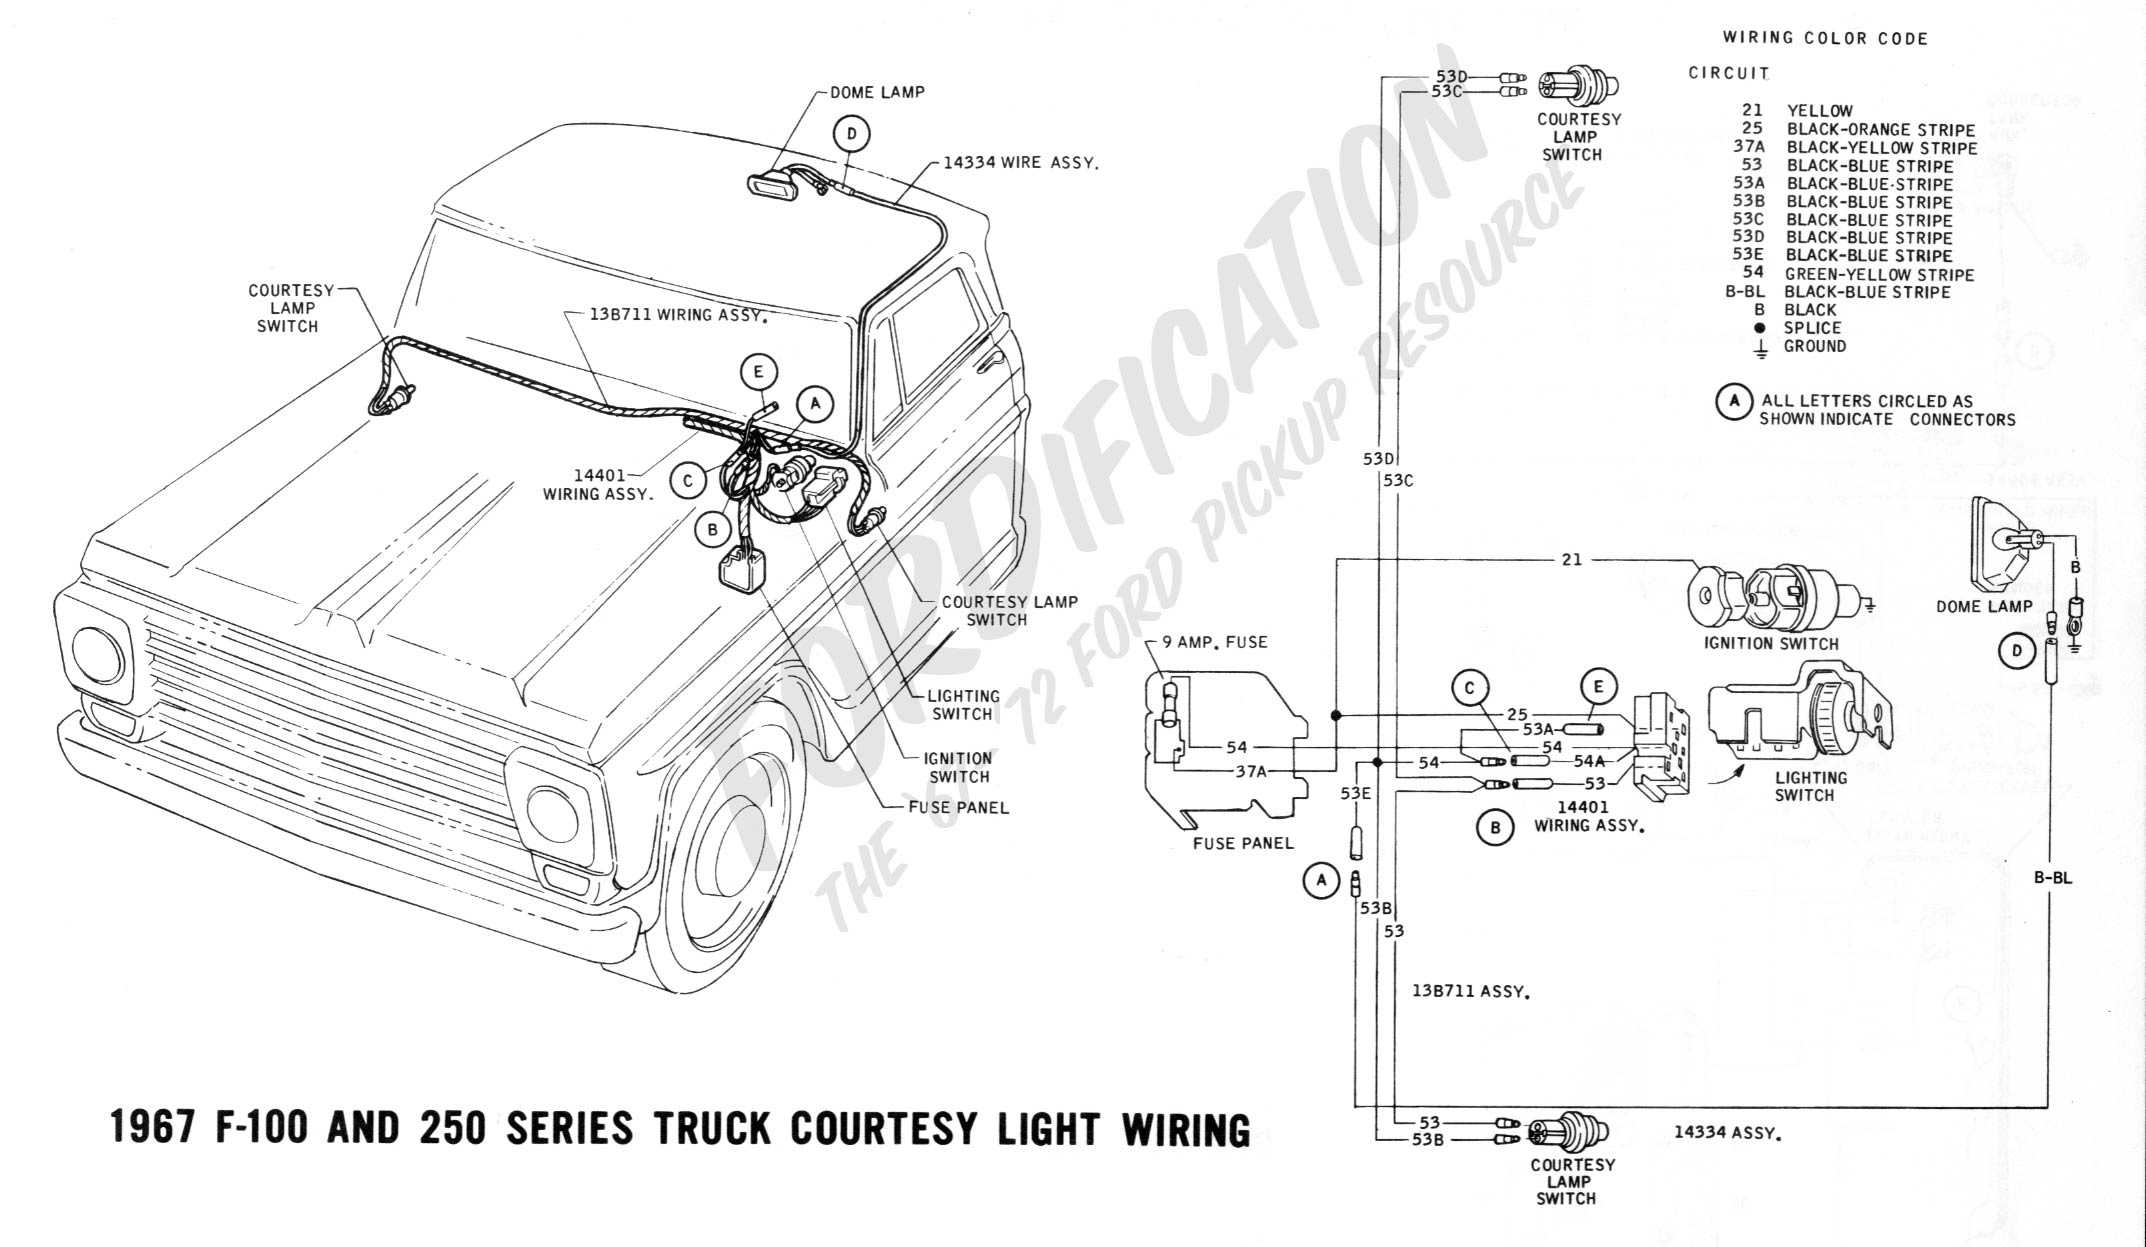 1967 Chevy Camaro Wiring Diagram Manual Of Chevrolet Dash Harness 67 Rs 78